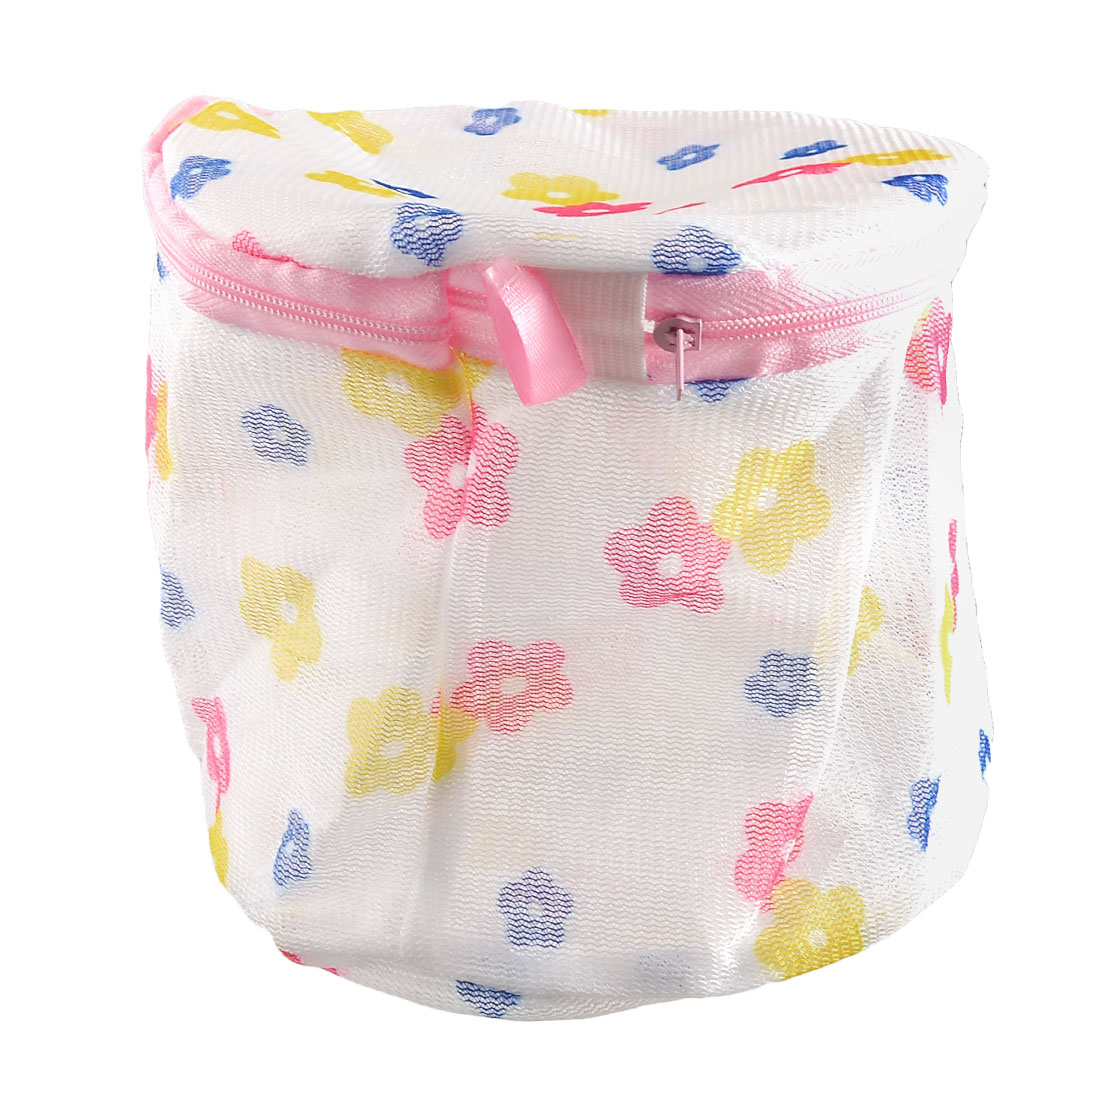 Laundry Floral Print Nylon Mesh Underwear Bra Washing Bag White